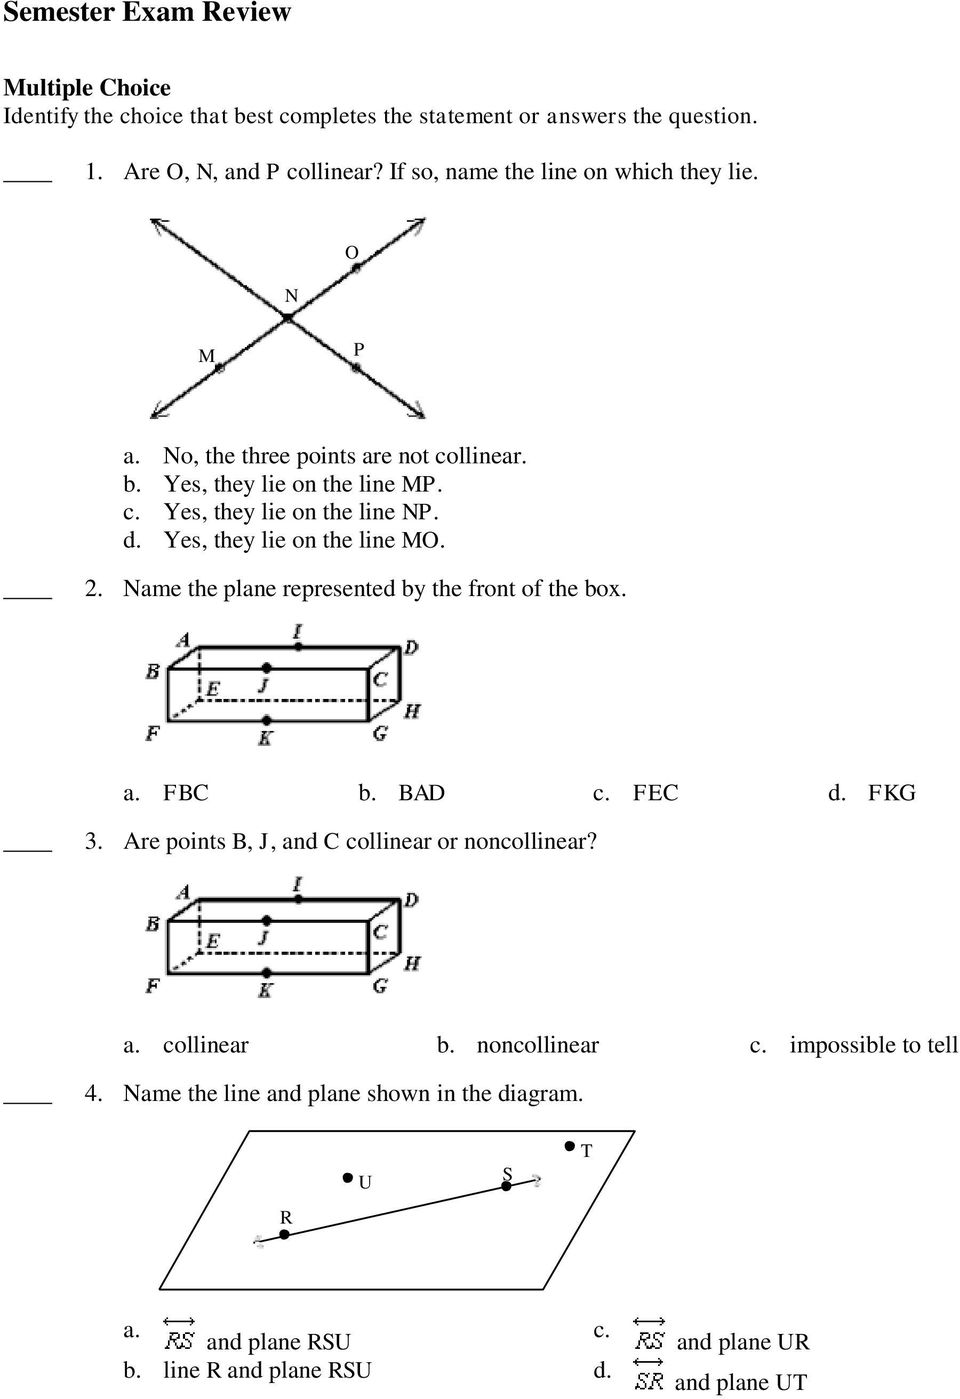 Semester Exam Review  Multiple Choice Identify the choice that best